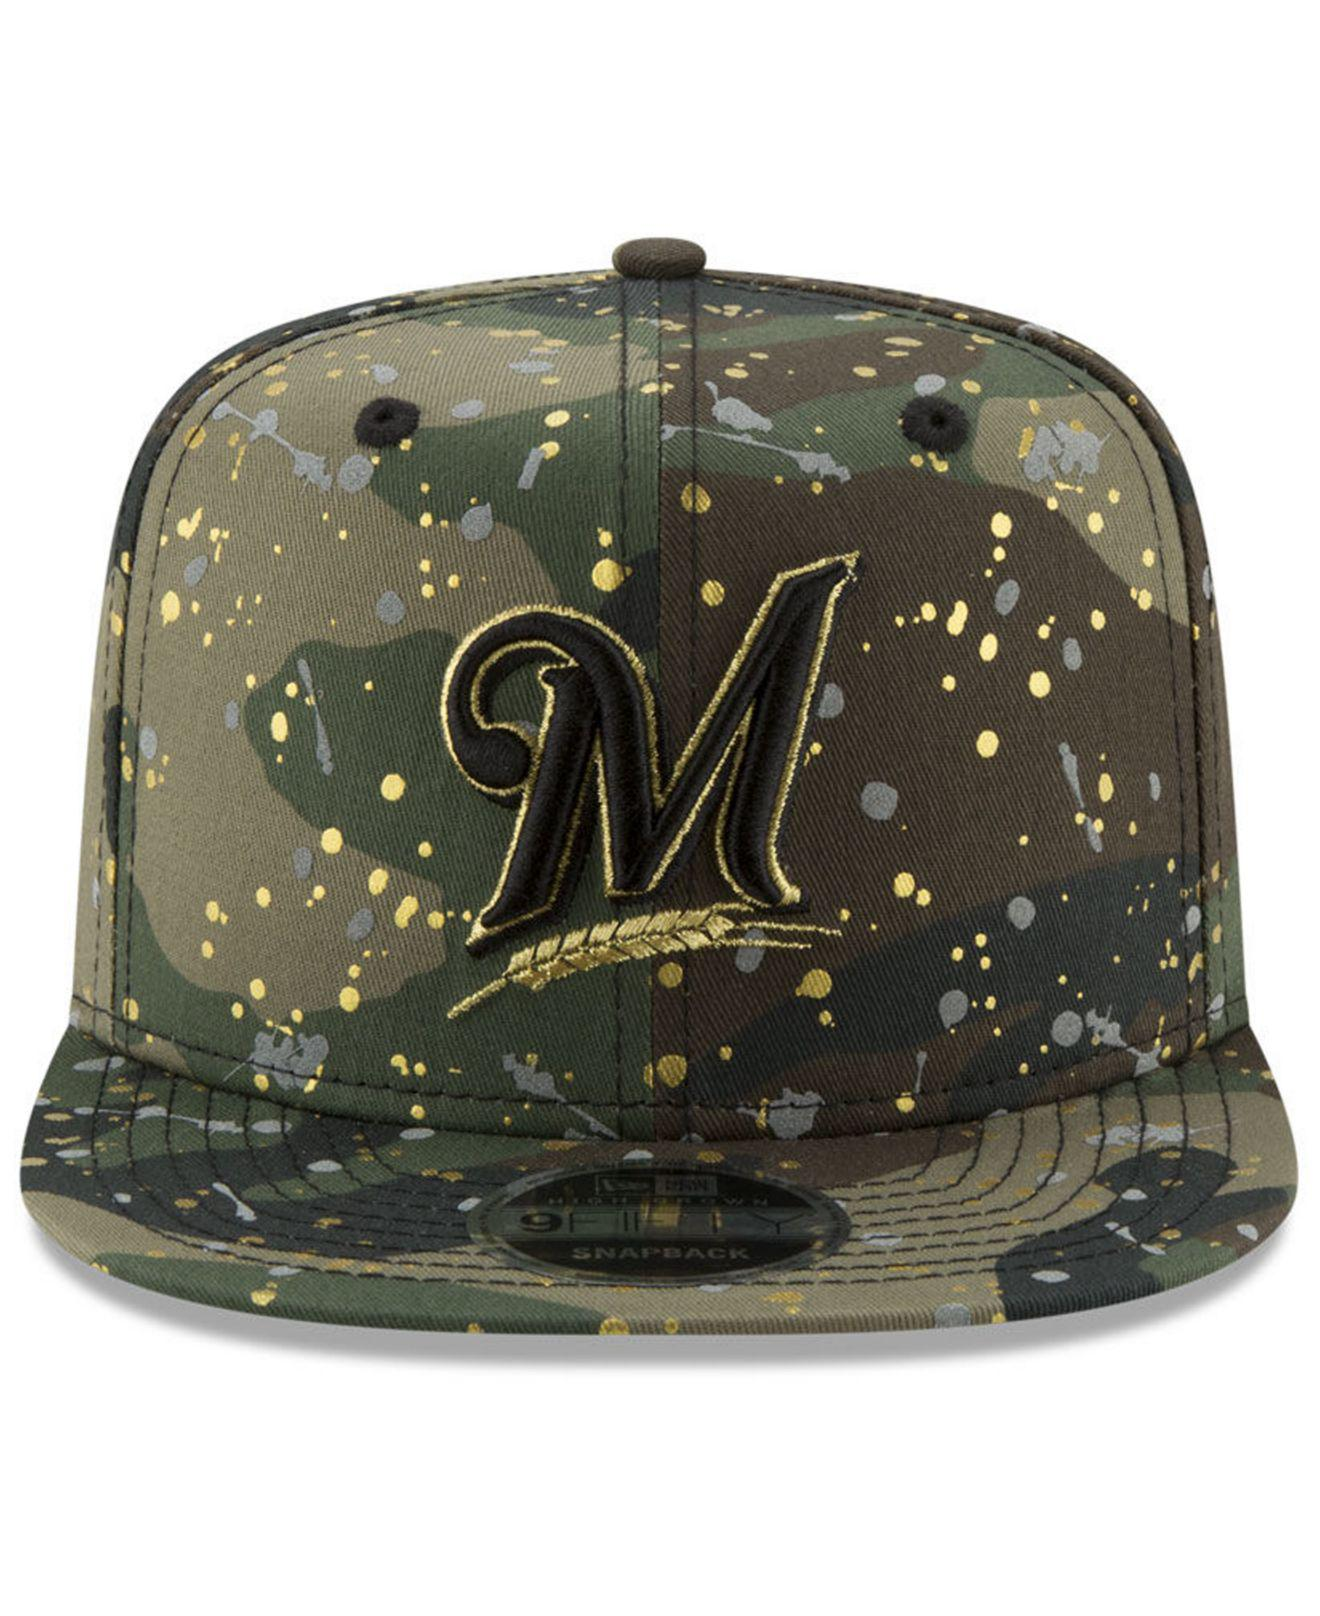 premium selection 3f289 c1f6a Lyst - Ktz Milwaukee Brewers Camo Spec 9fifty Snapback Cap in Green for Men